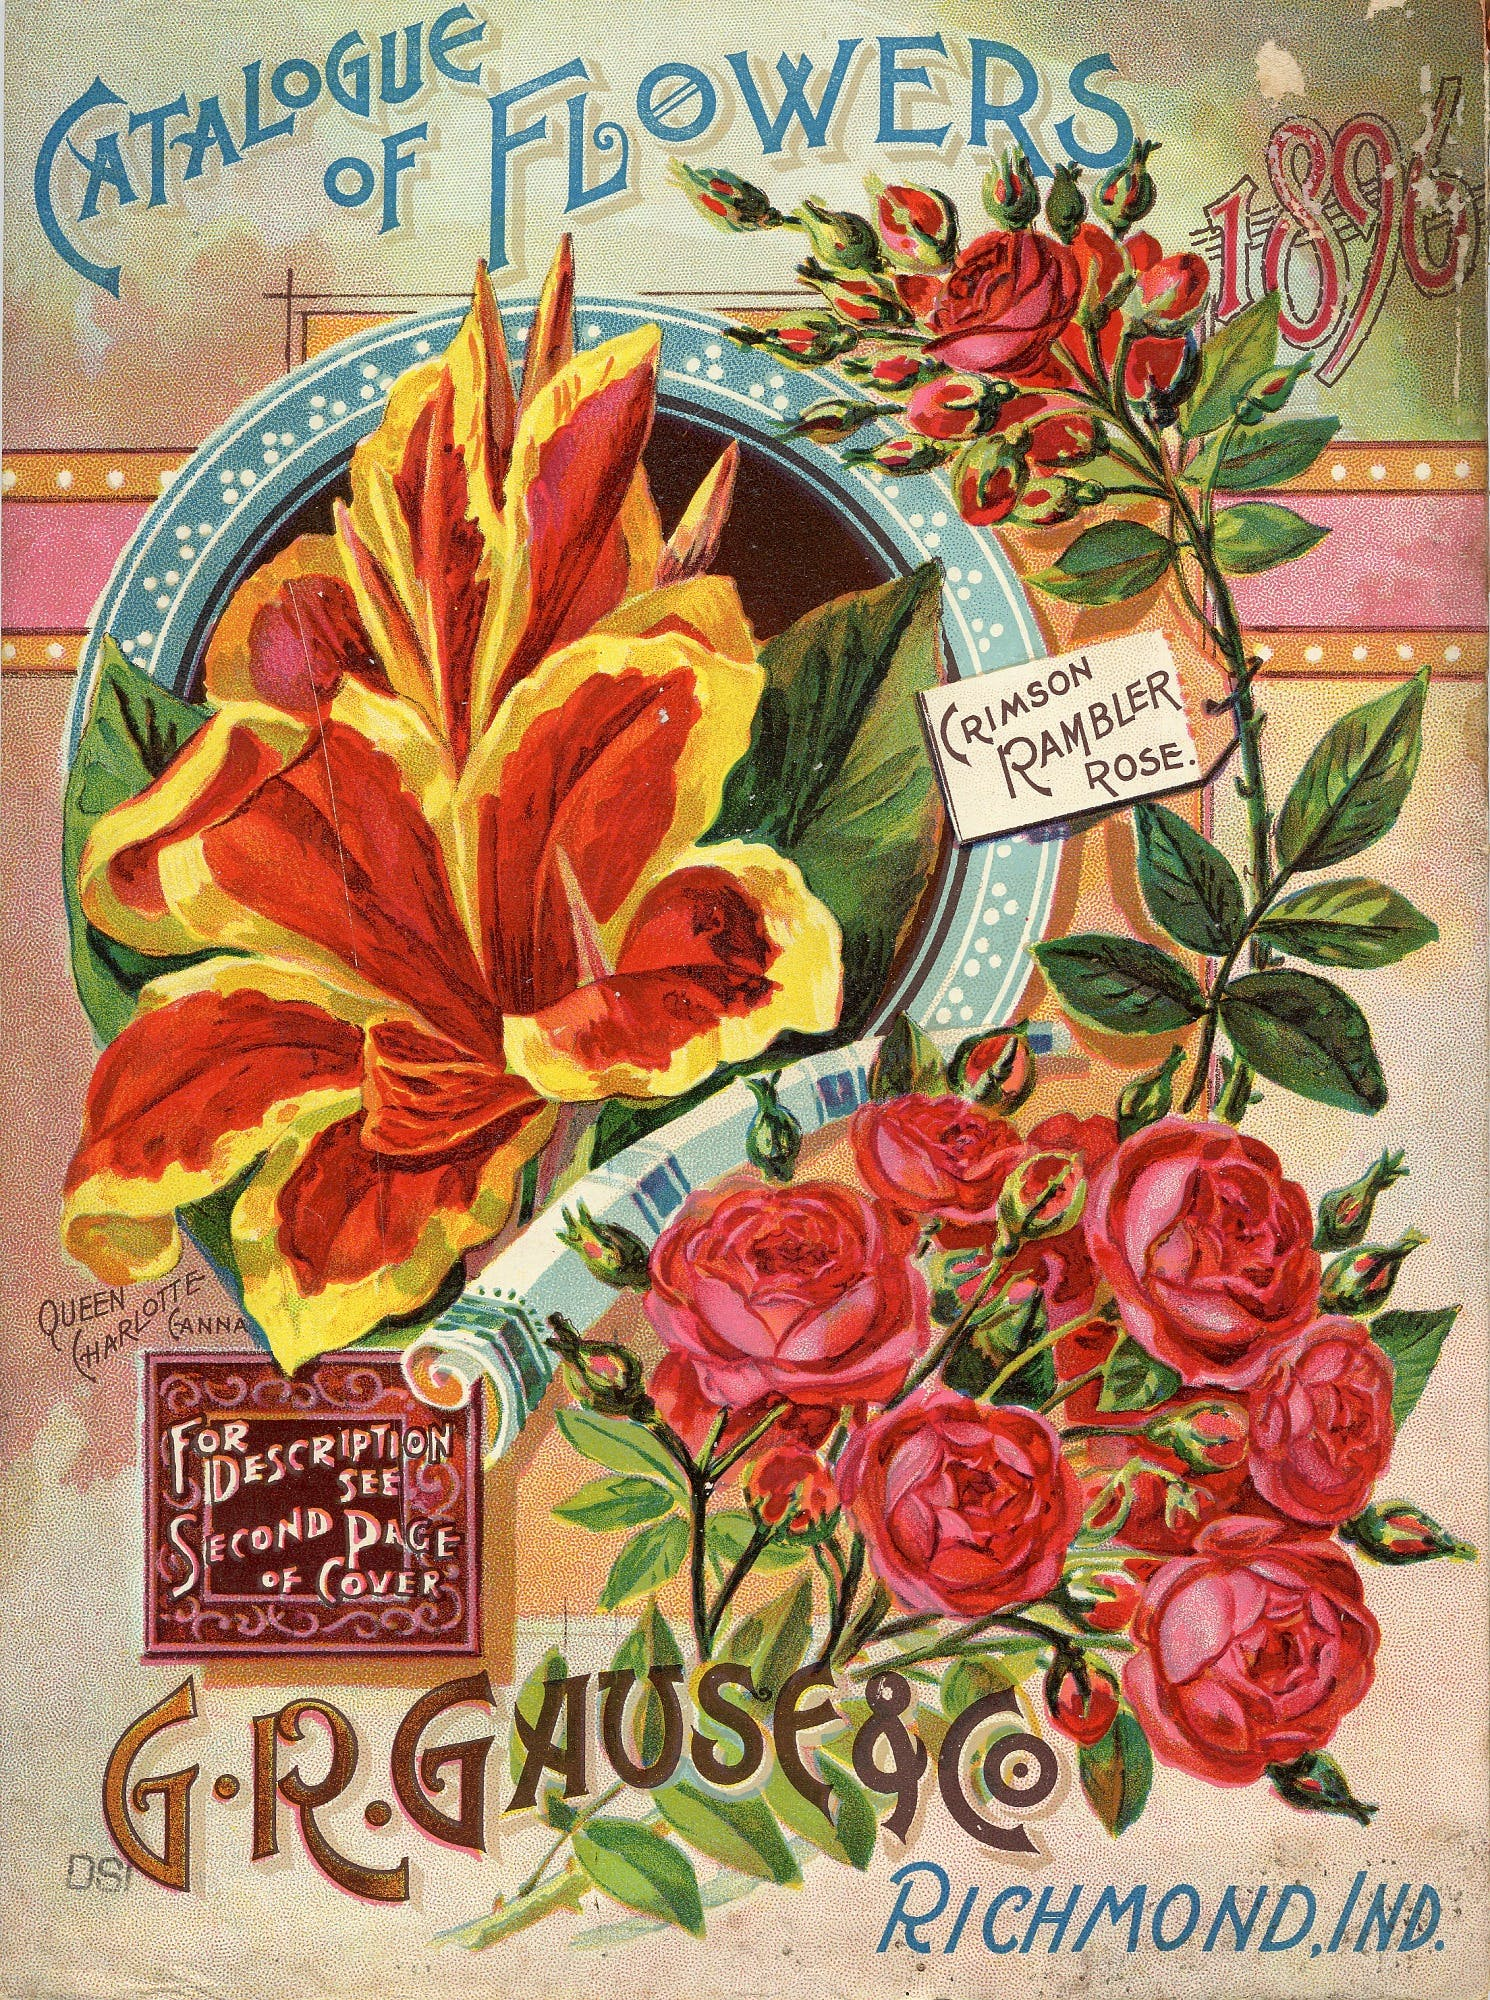 seed catalog image of flowers